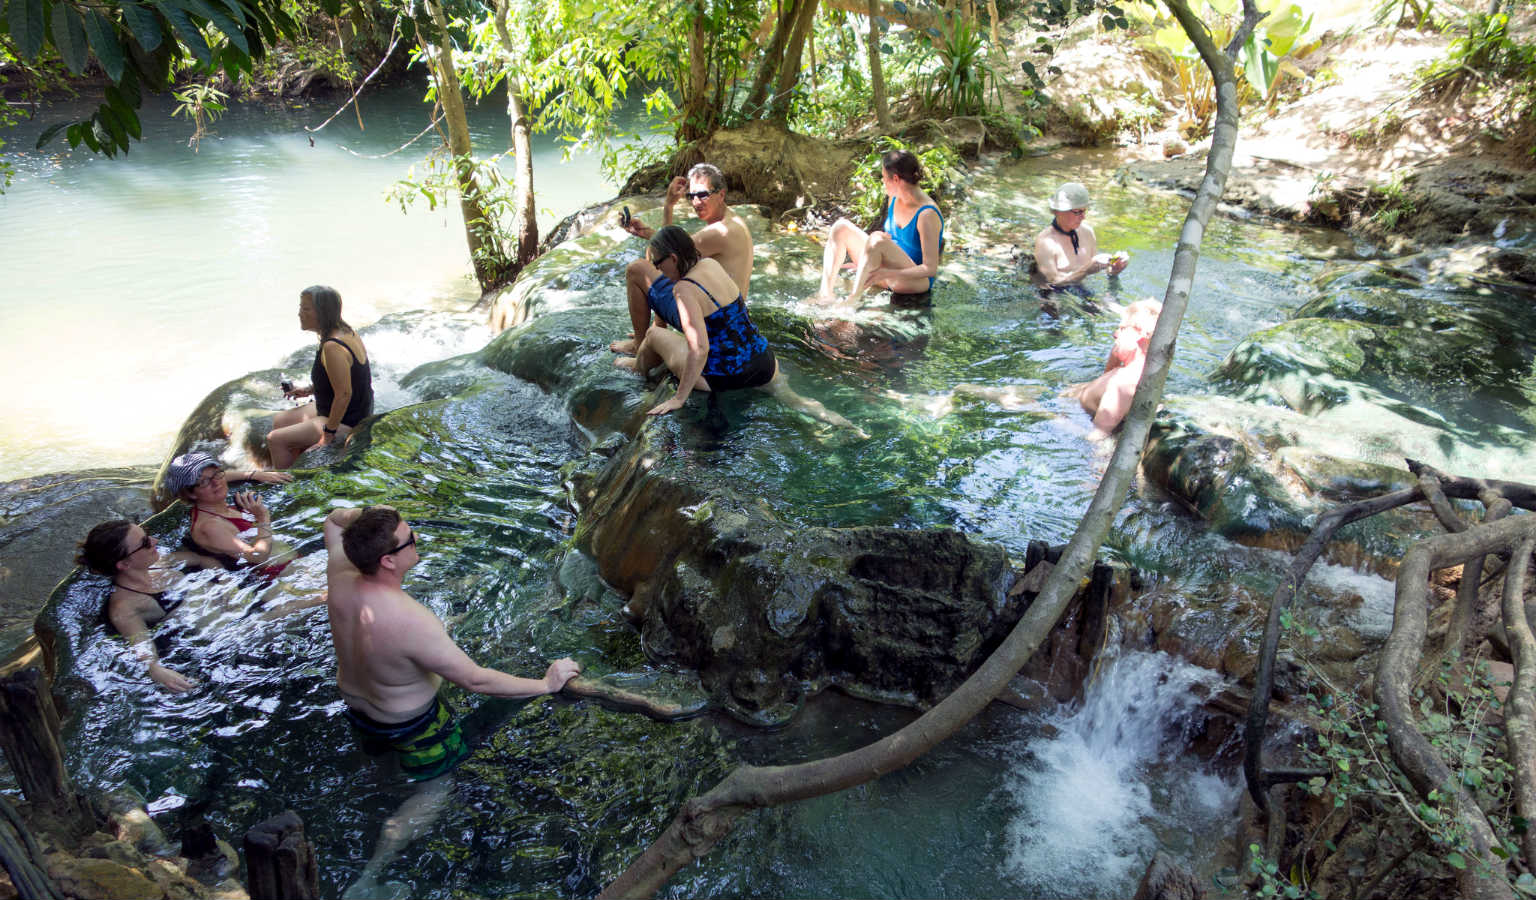 People enjoy the warm water of the Namtok Ron Hot Springs in Krabi